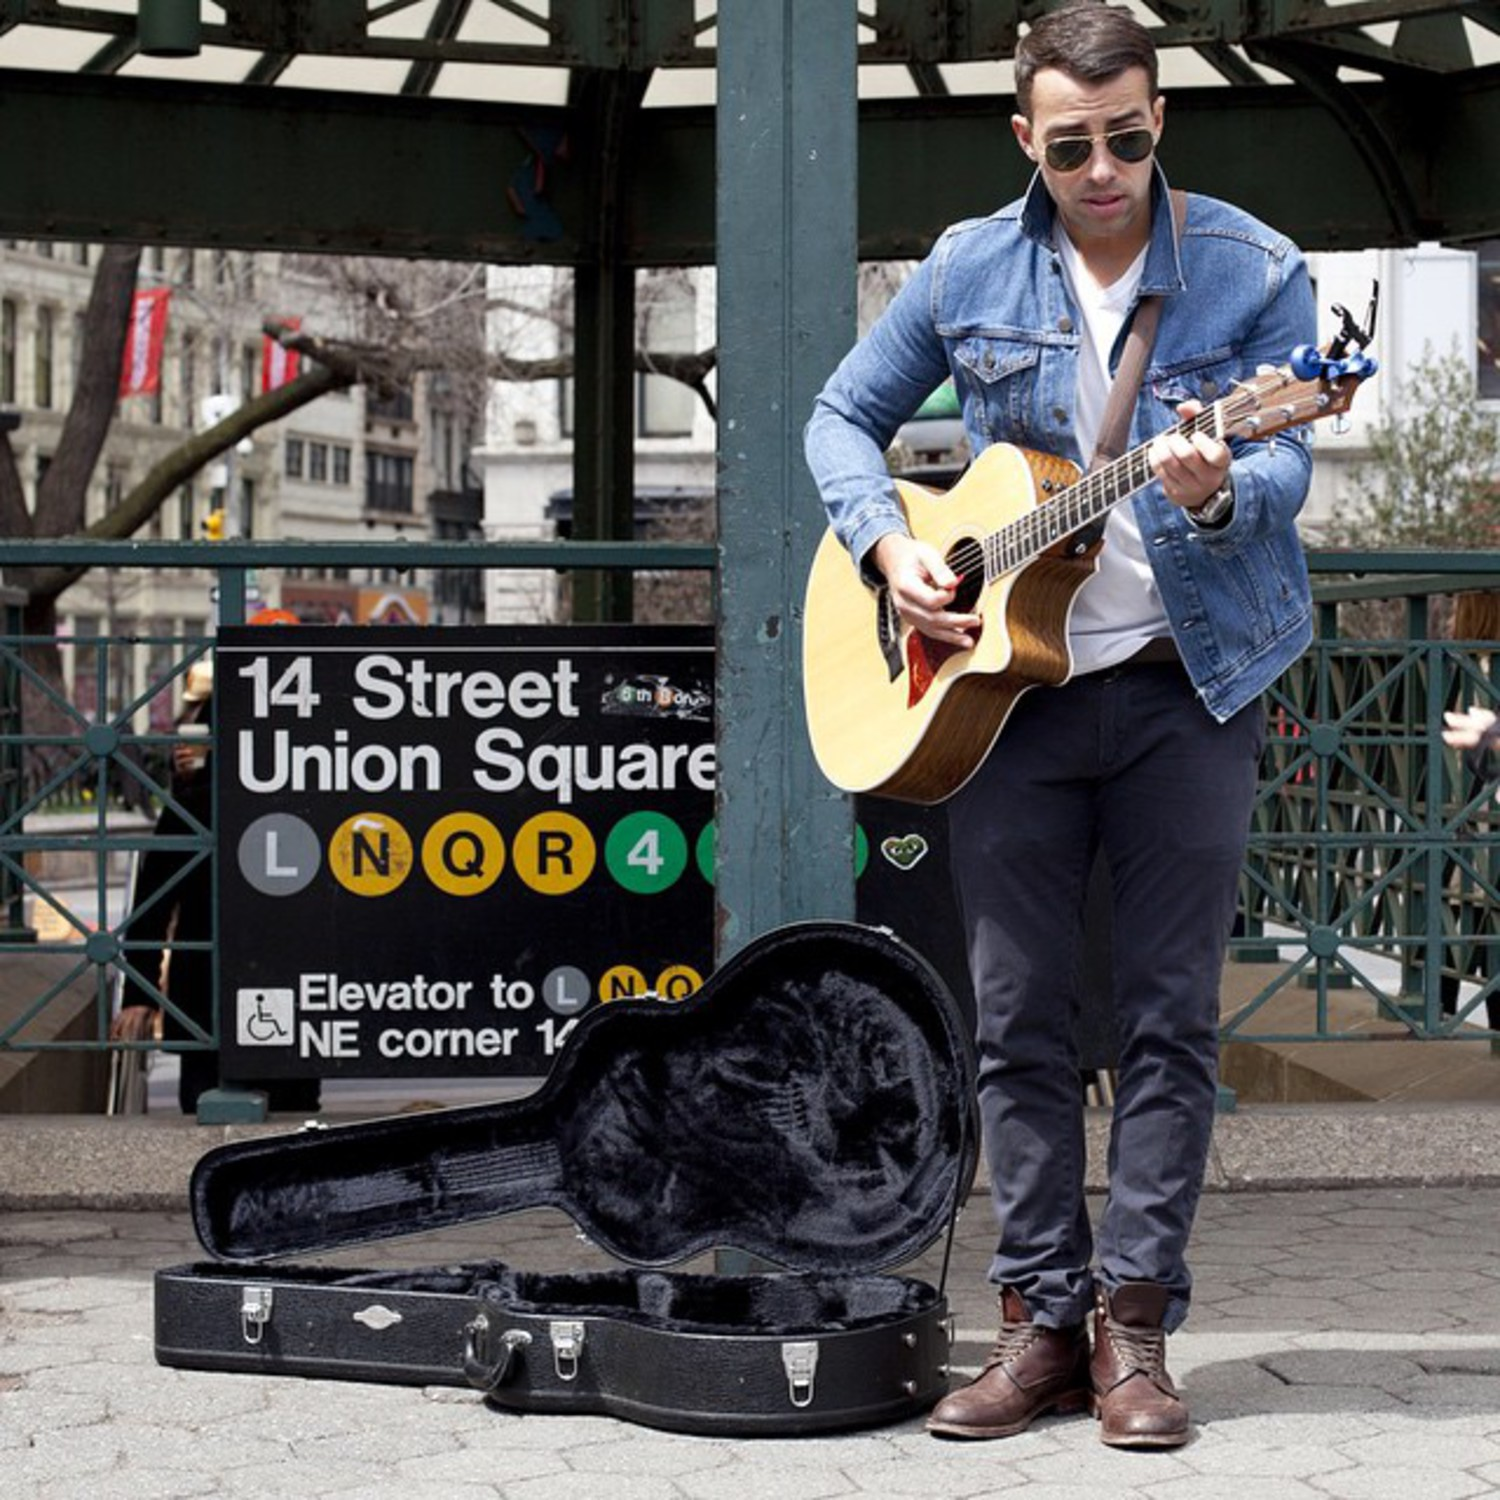 Chris Leamy busks to help the homeless